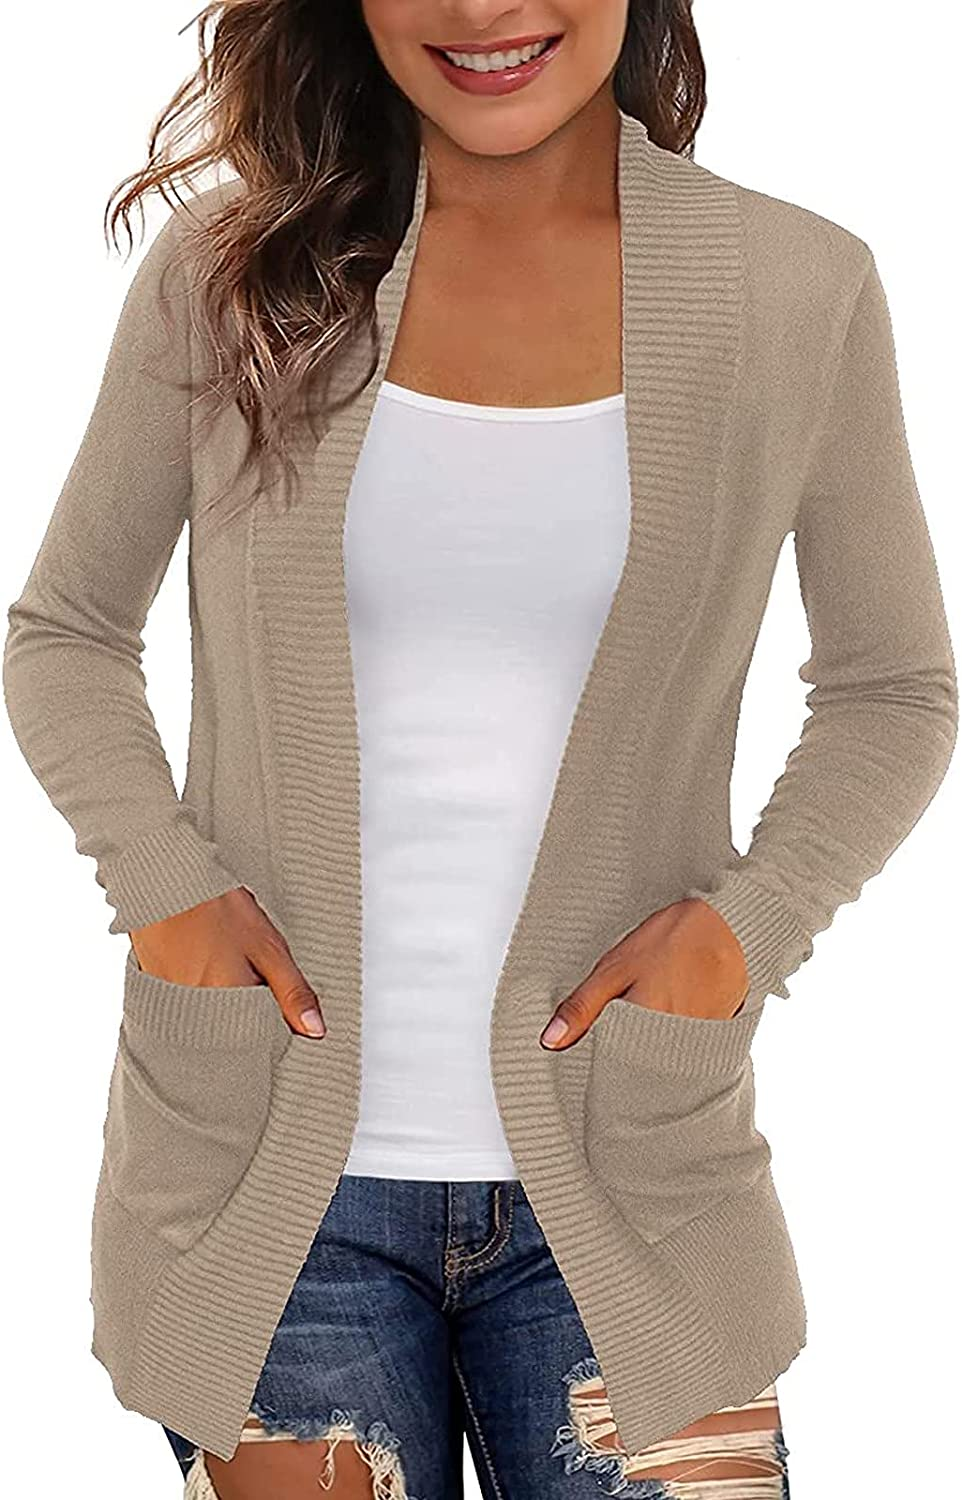 Women's Cardigans With Pockets Casual Lightweight Open Front Cardigan Sweaters